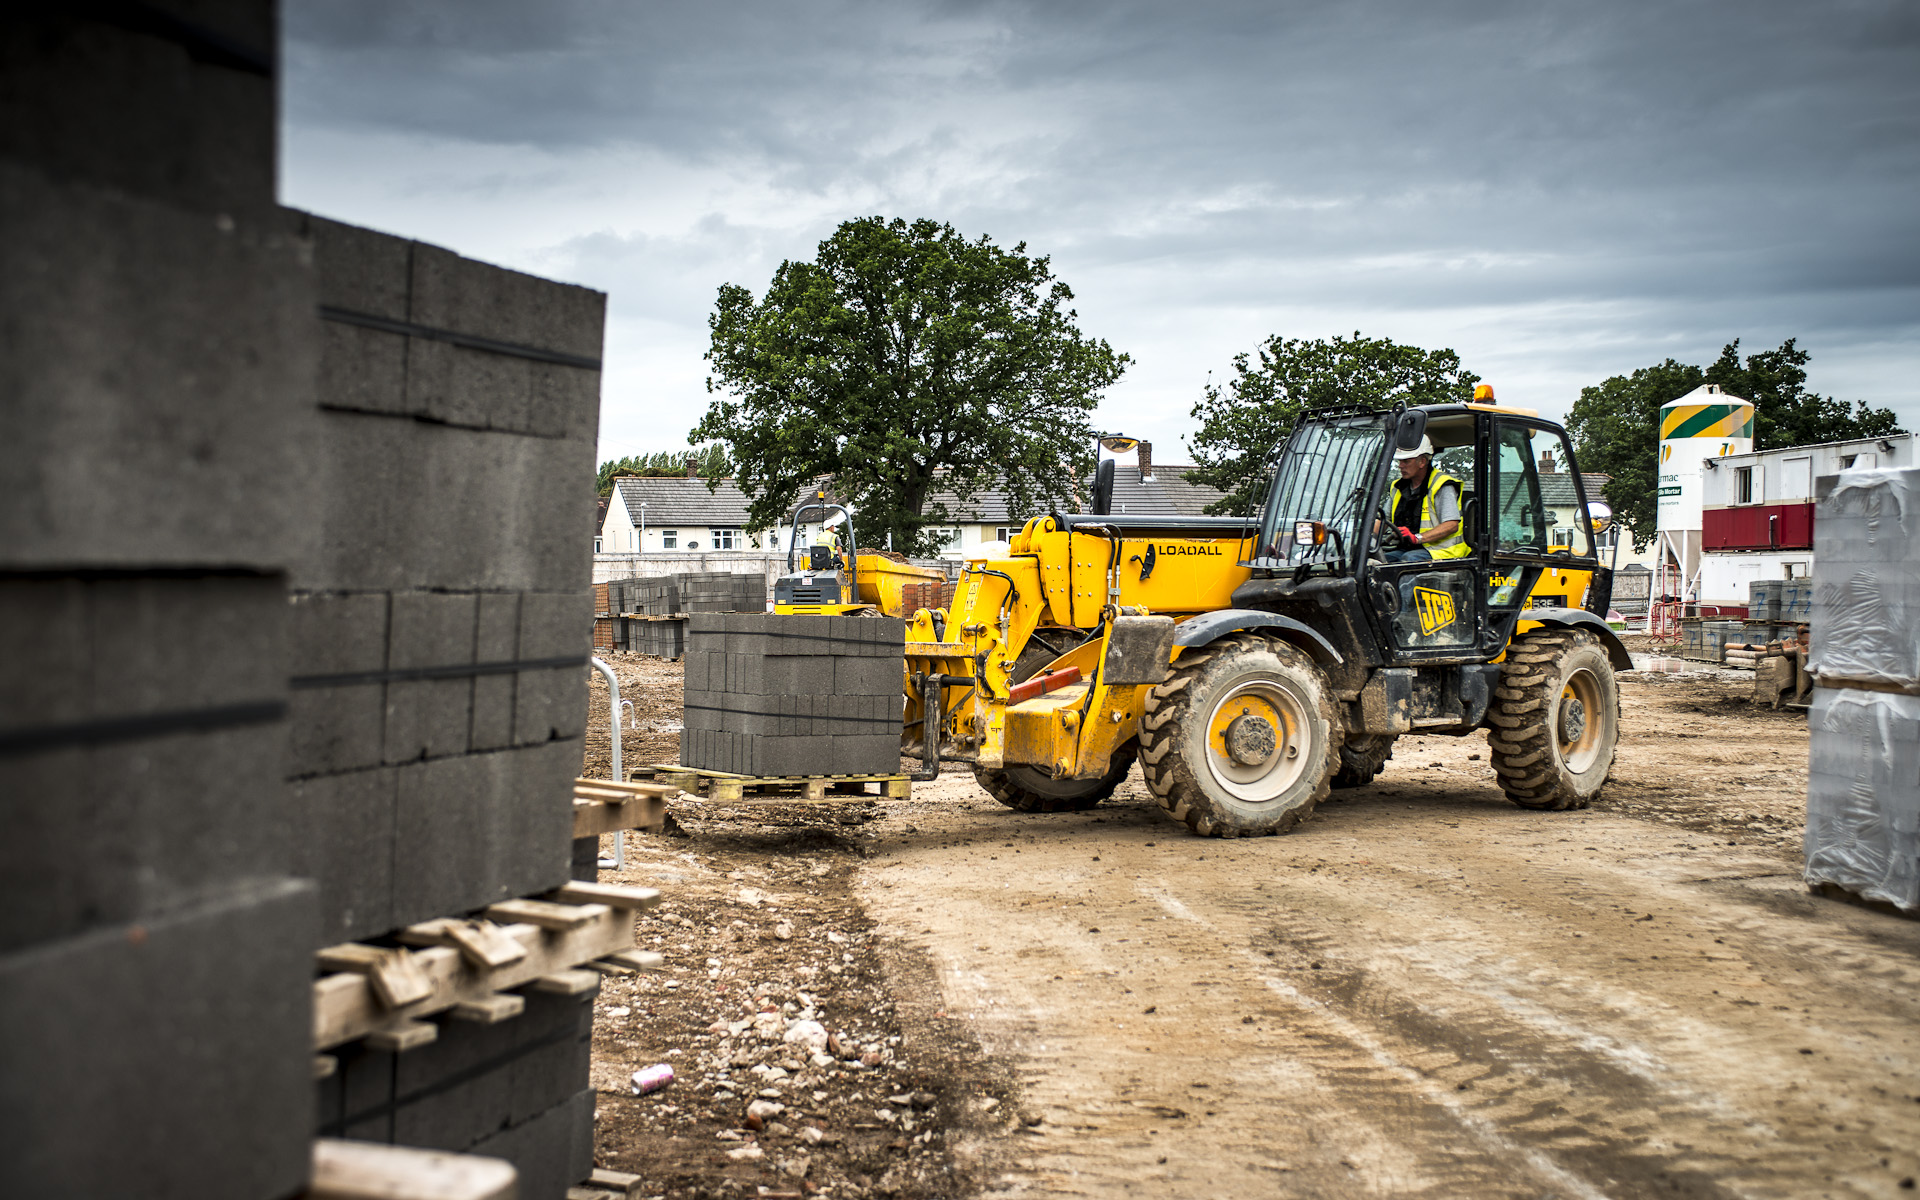 JCB tractor digger on construction site